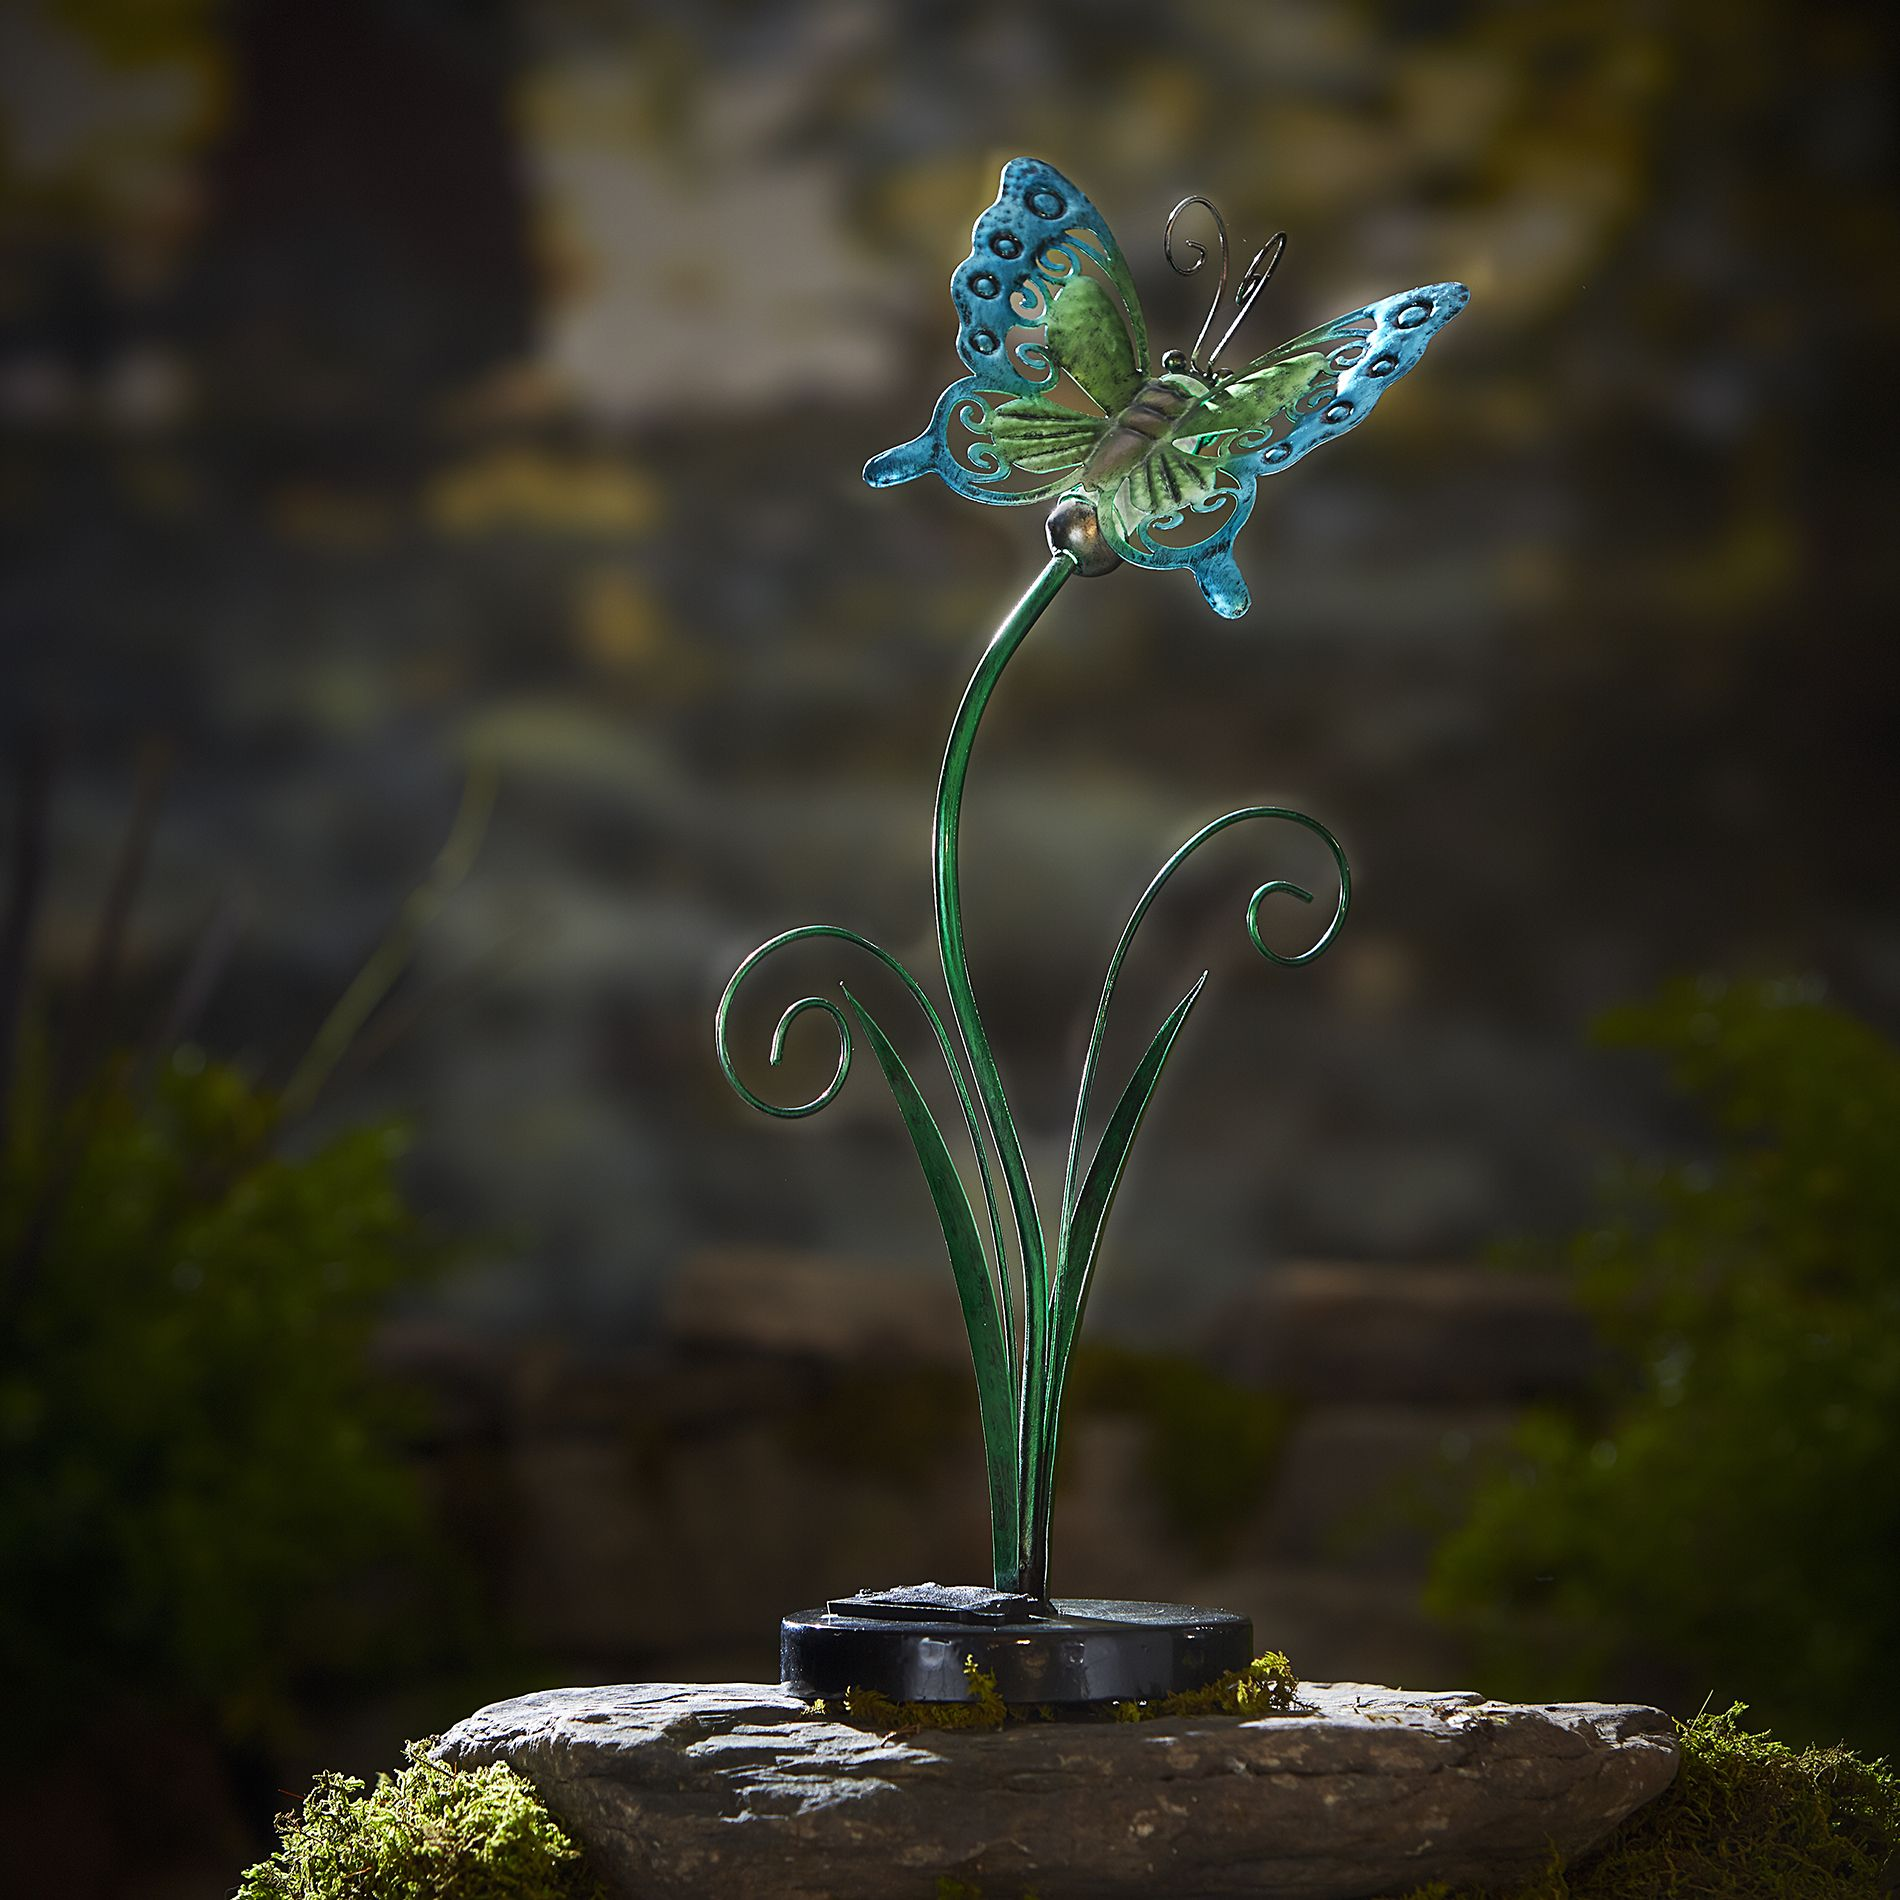 90%METAL10%SOLAR LIGHT -This sculpture has some beautiful lines and beautifully colored ,also the solar light can recharges in the sun and lights up at night to bright garden day and night .